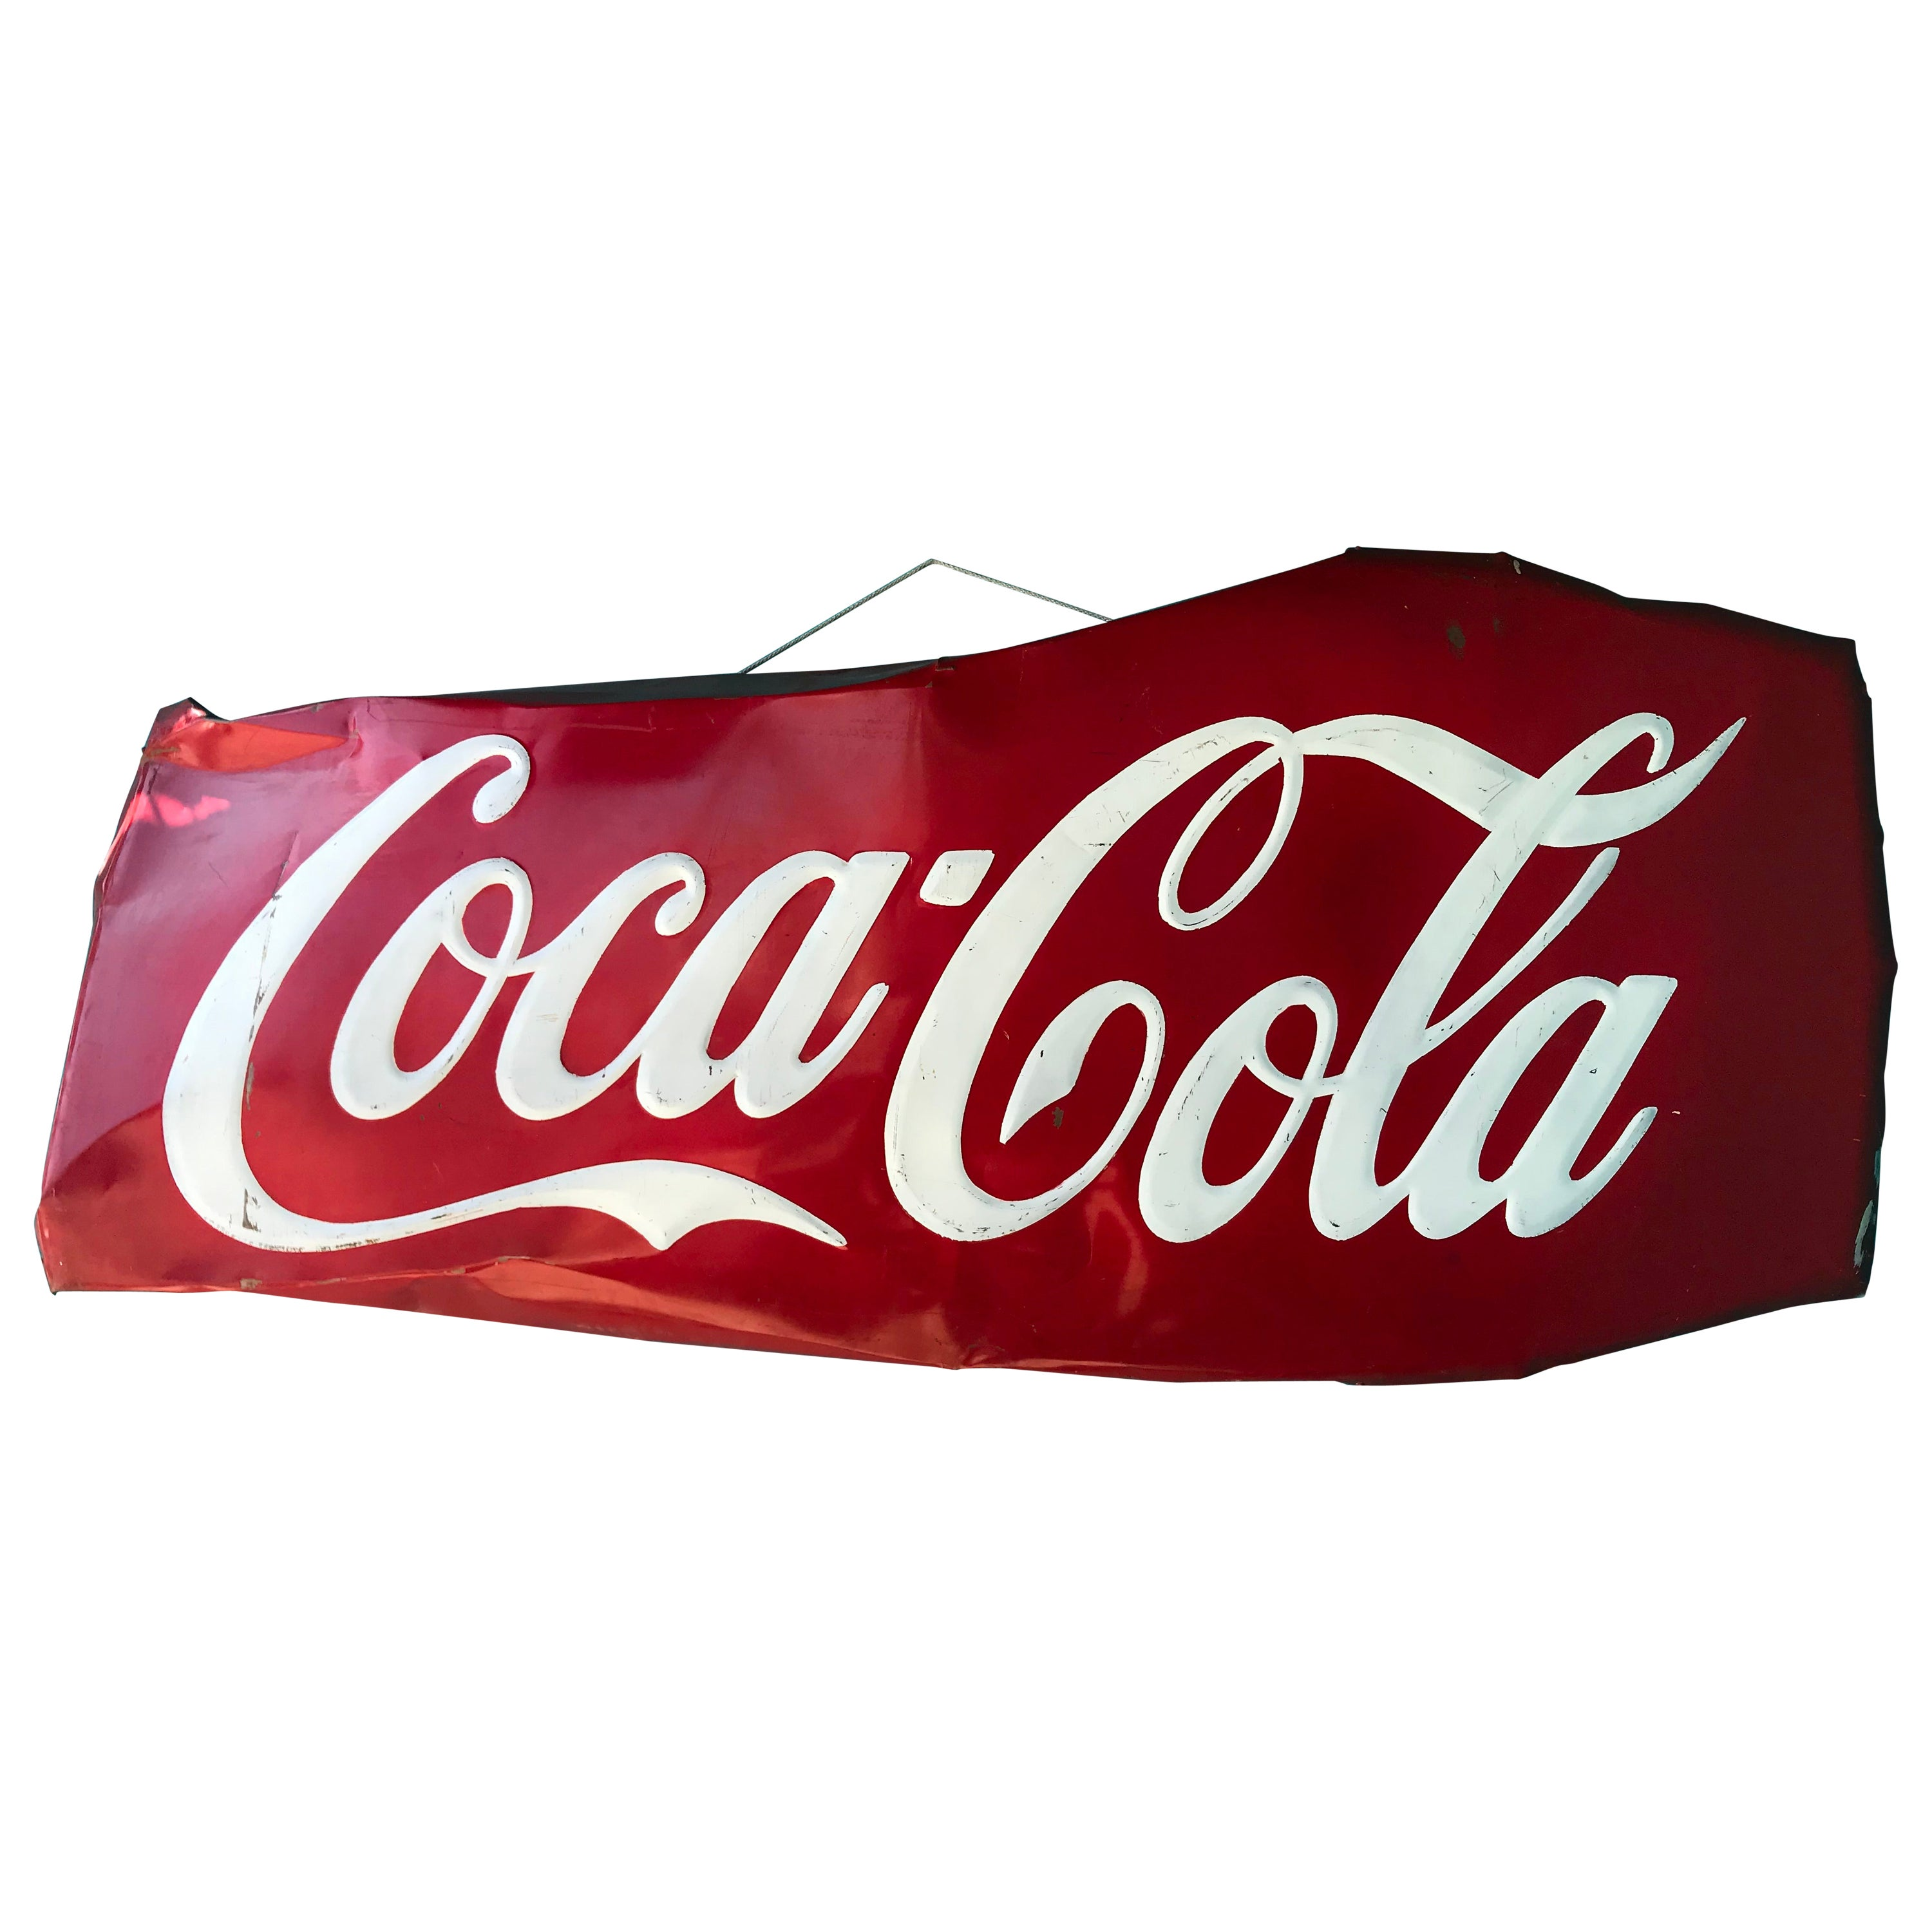 Monumental 7ft Mexican Coca Cola Advertising Porcelain Sign, 1960s